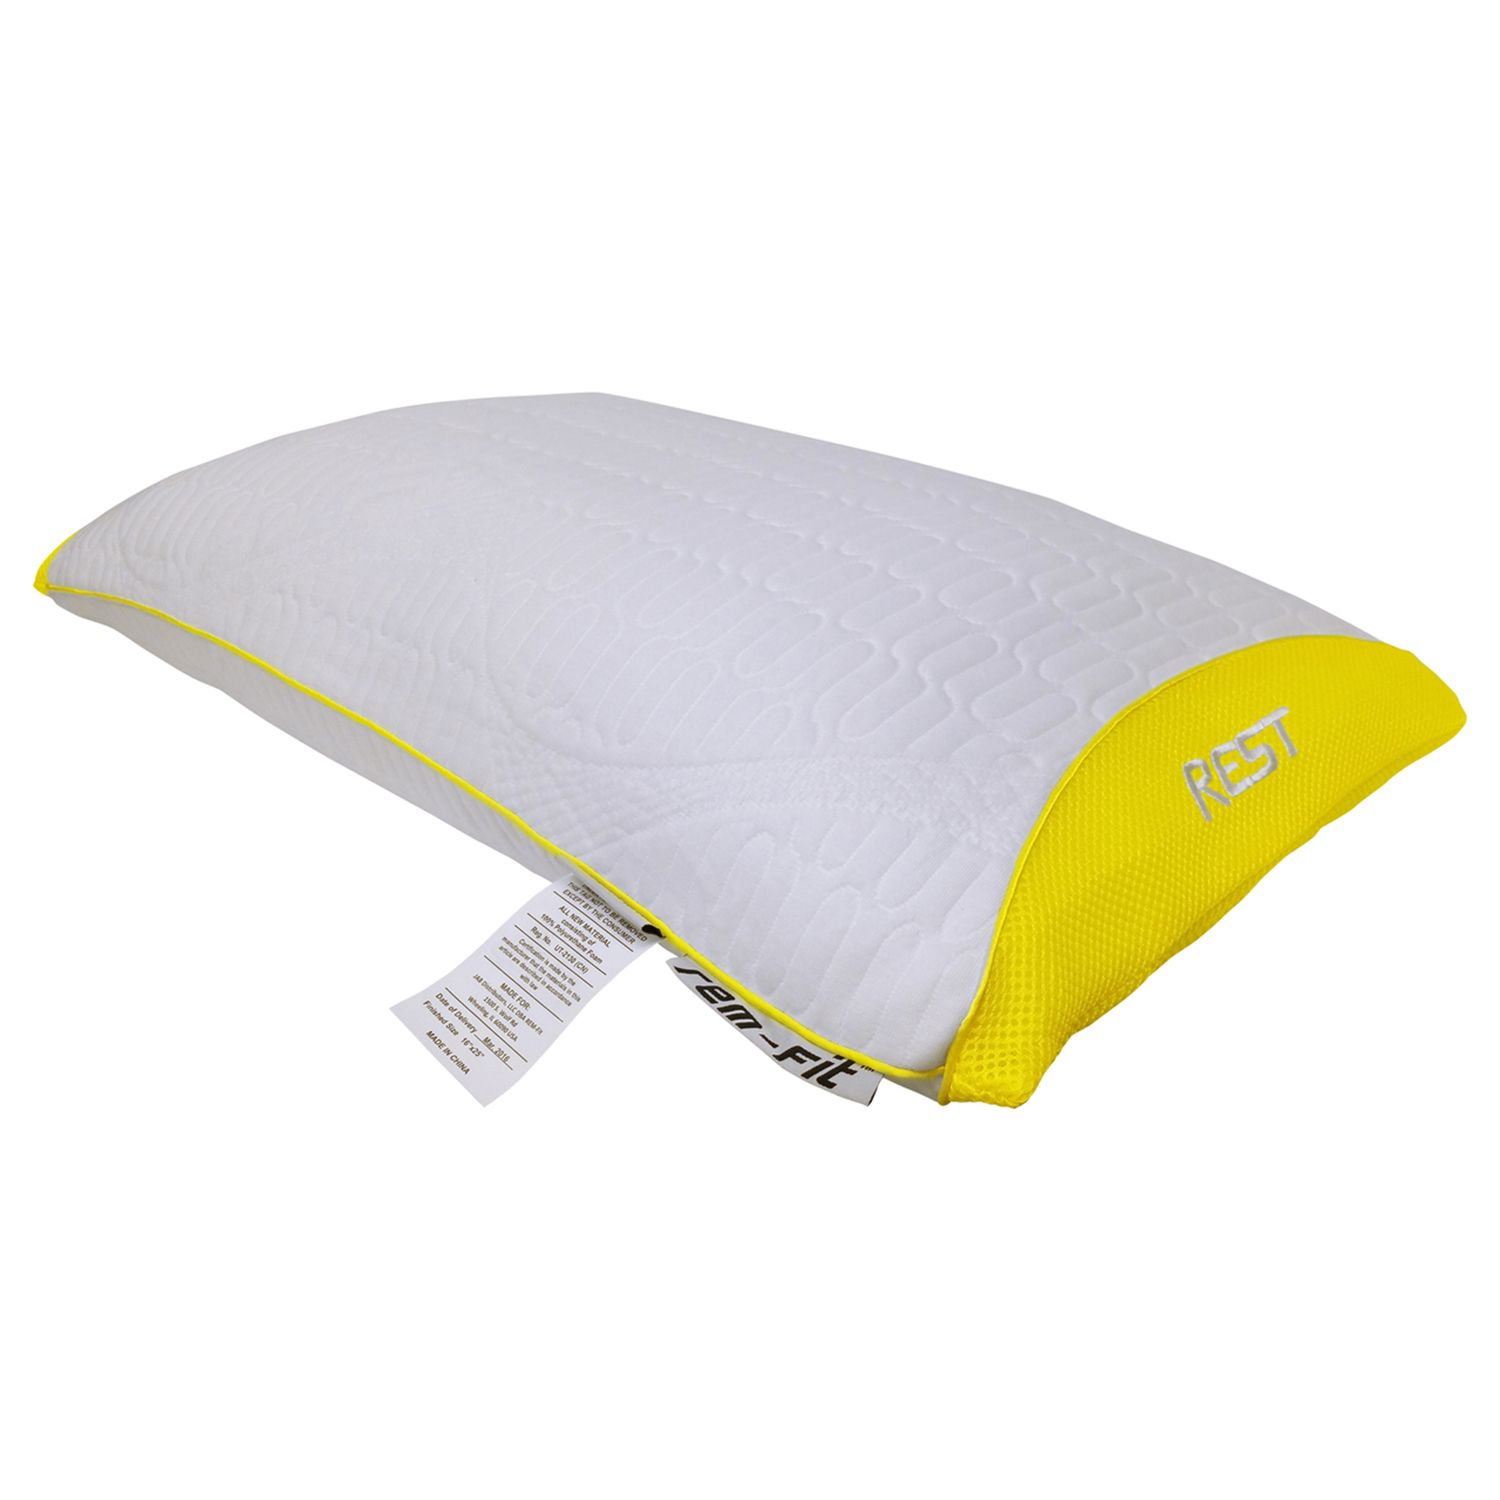 protectabed remfit rest 100 series hybrid stomach sleeper pillow